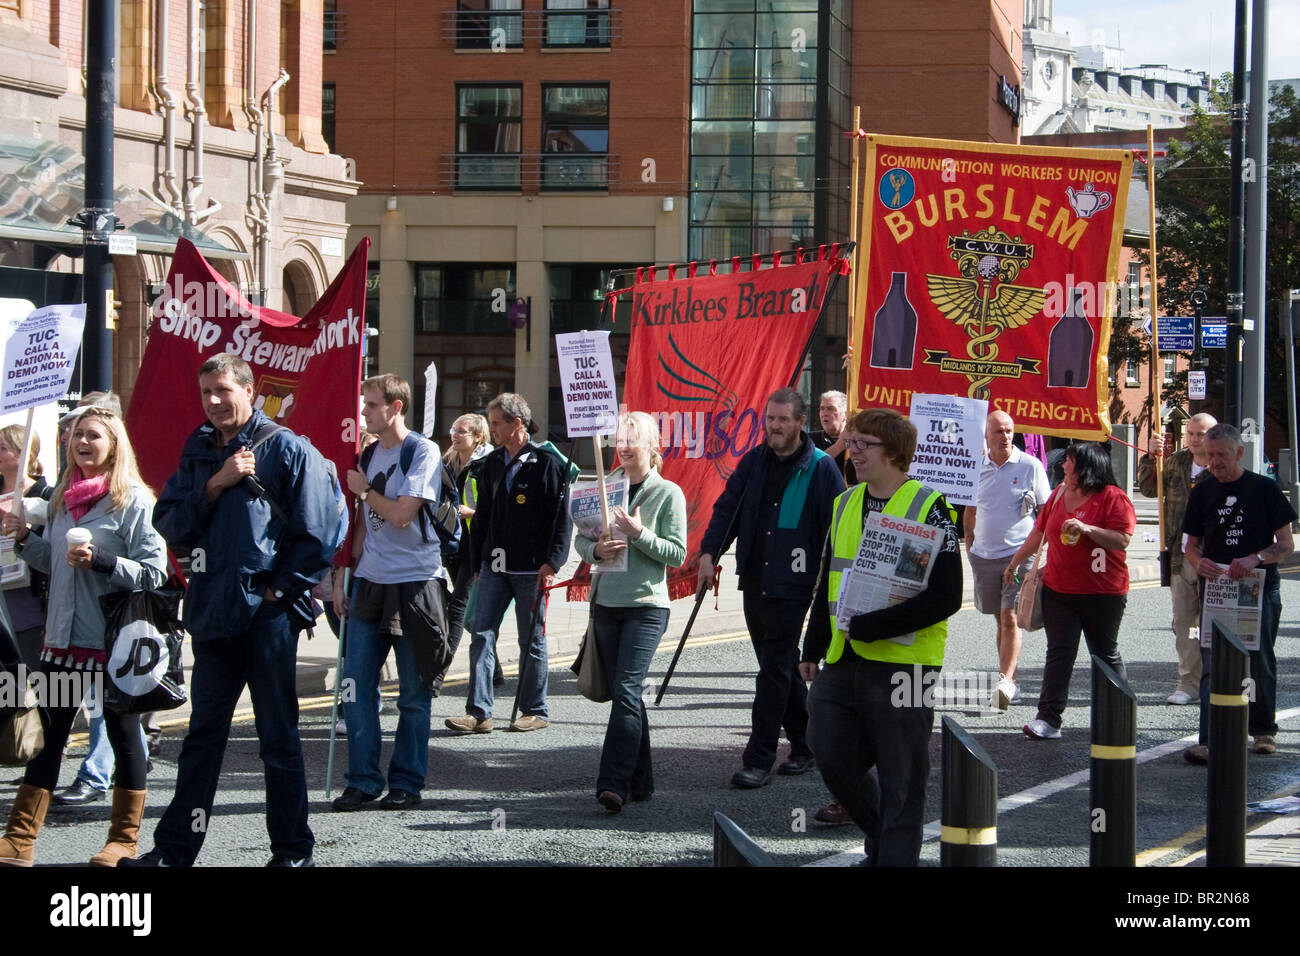 Demonstration at start of TUC Congress to lobby for action against government cuts,services, benefits. Manchester. - Stock Image